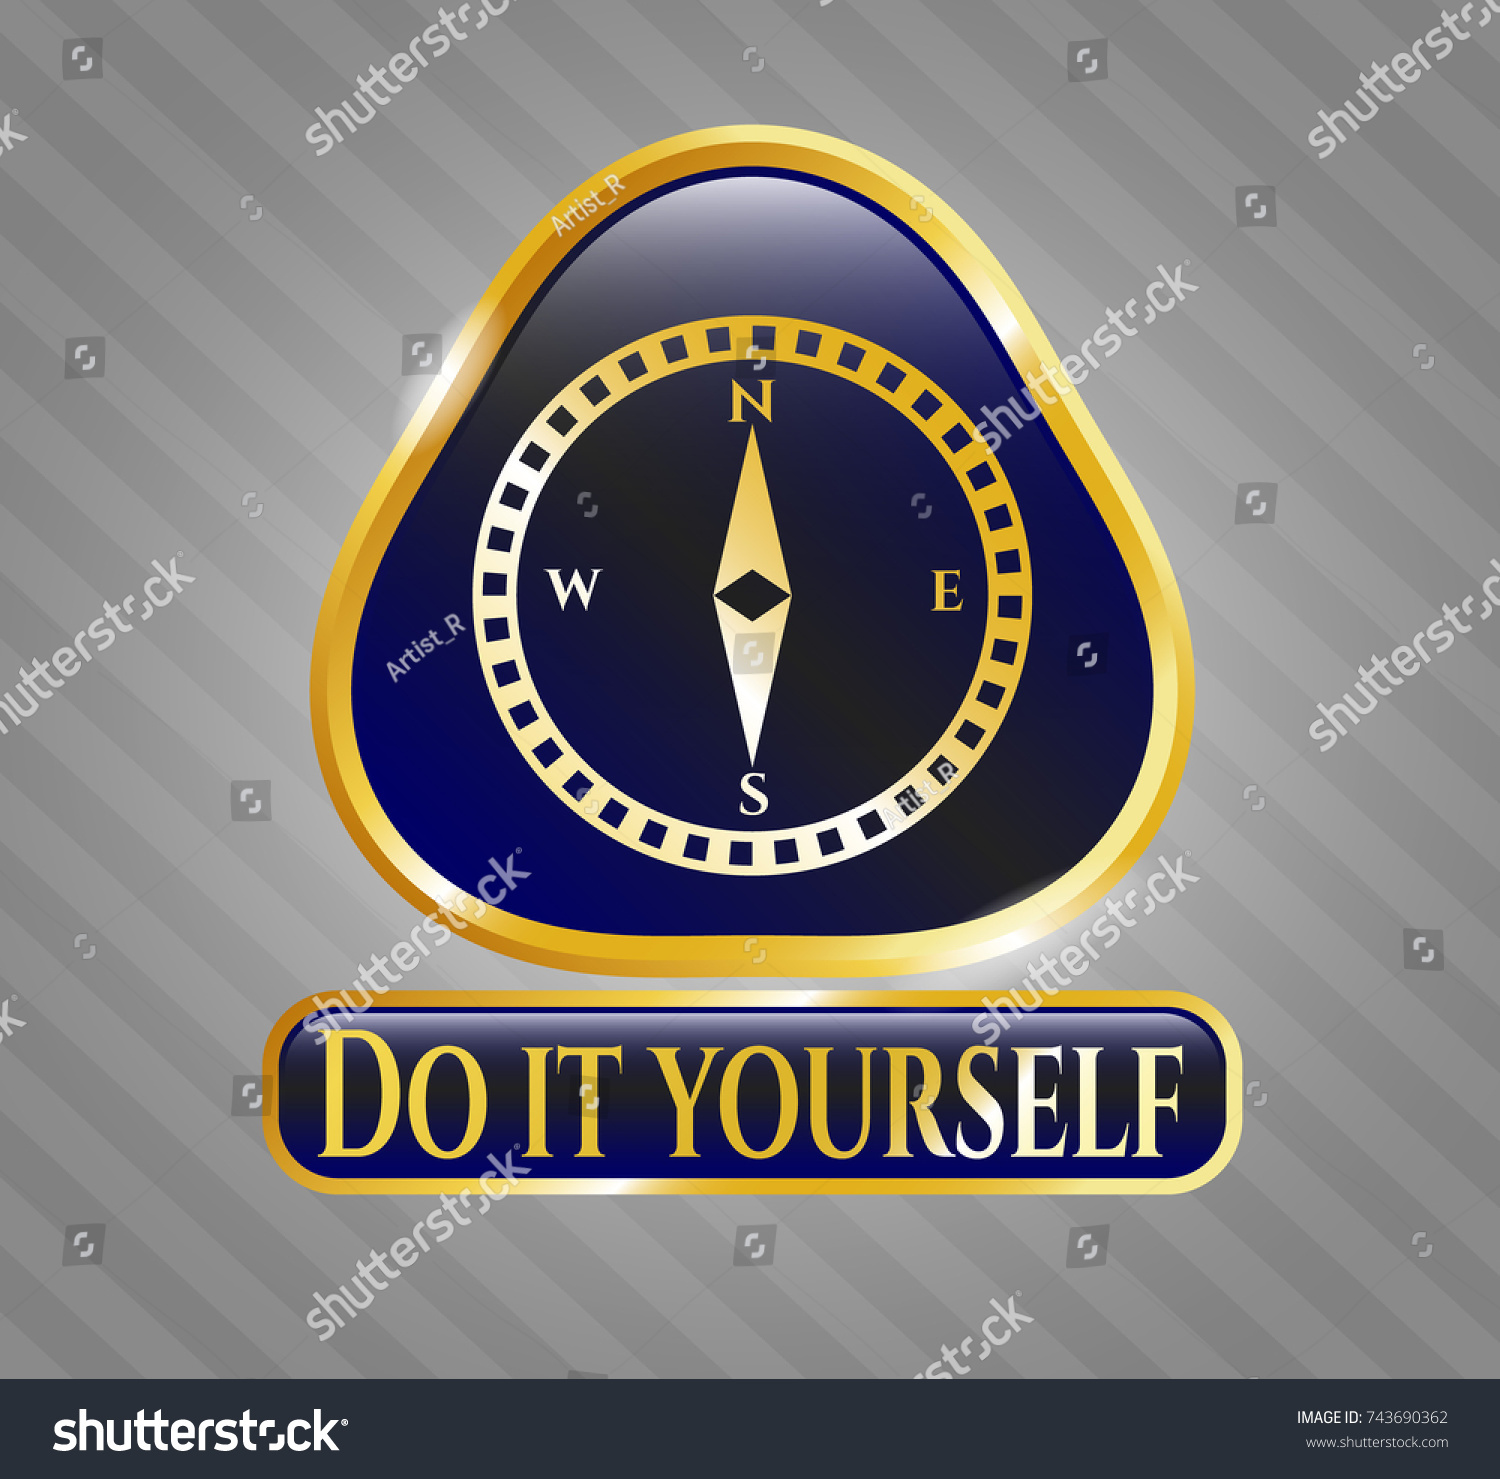 Golden badge compass icon do yourself stock vector 743690362 golden badge with compass icon and do it yourself text inside solutioingenieria Image collections